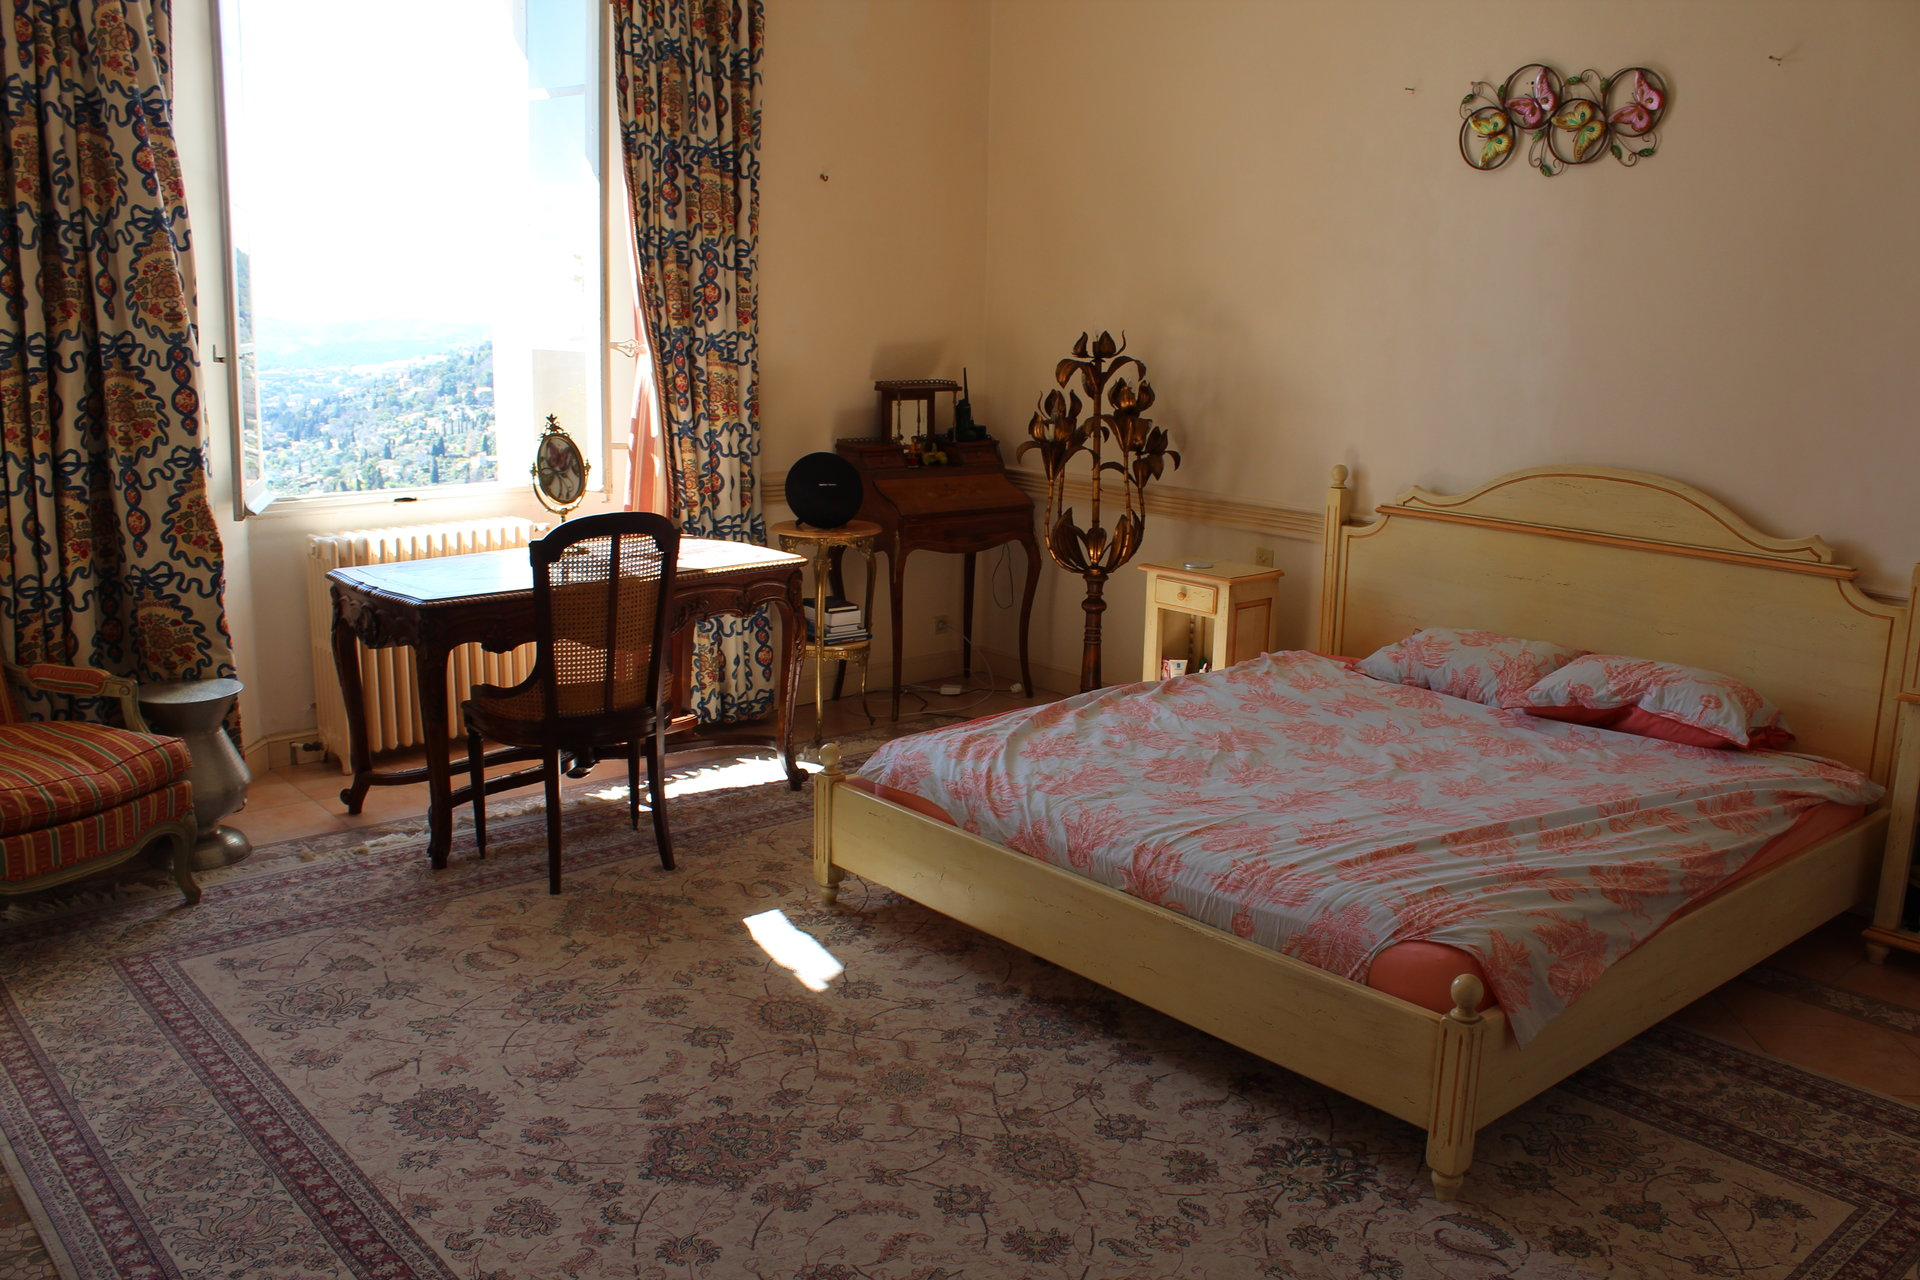 On the Côte d'Azur and on the height of Magagnosc, beautiful country house of the 1850s sea view 600 m²